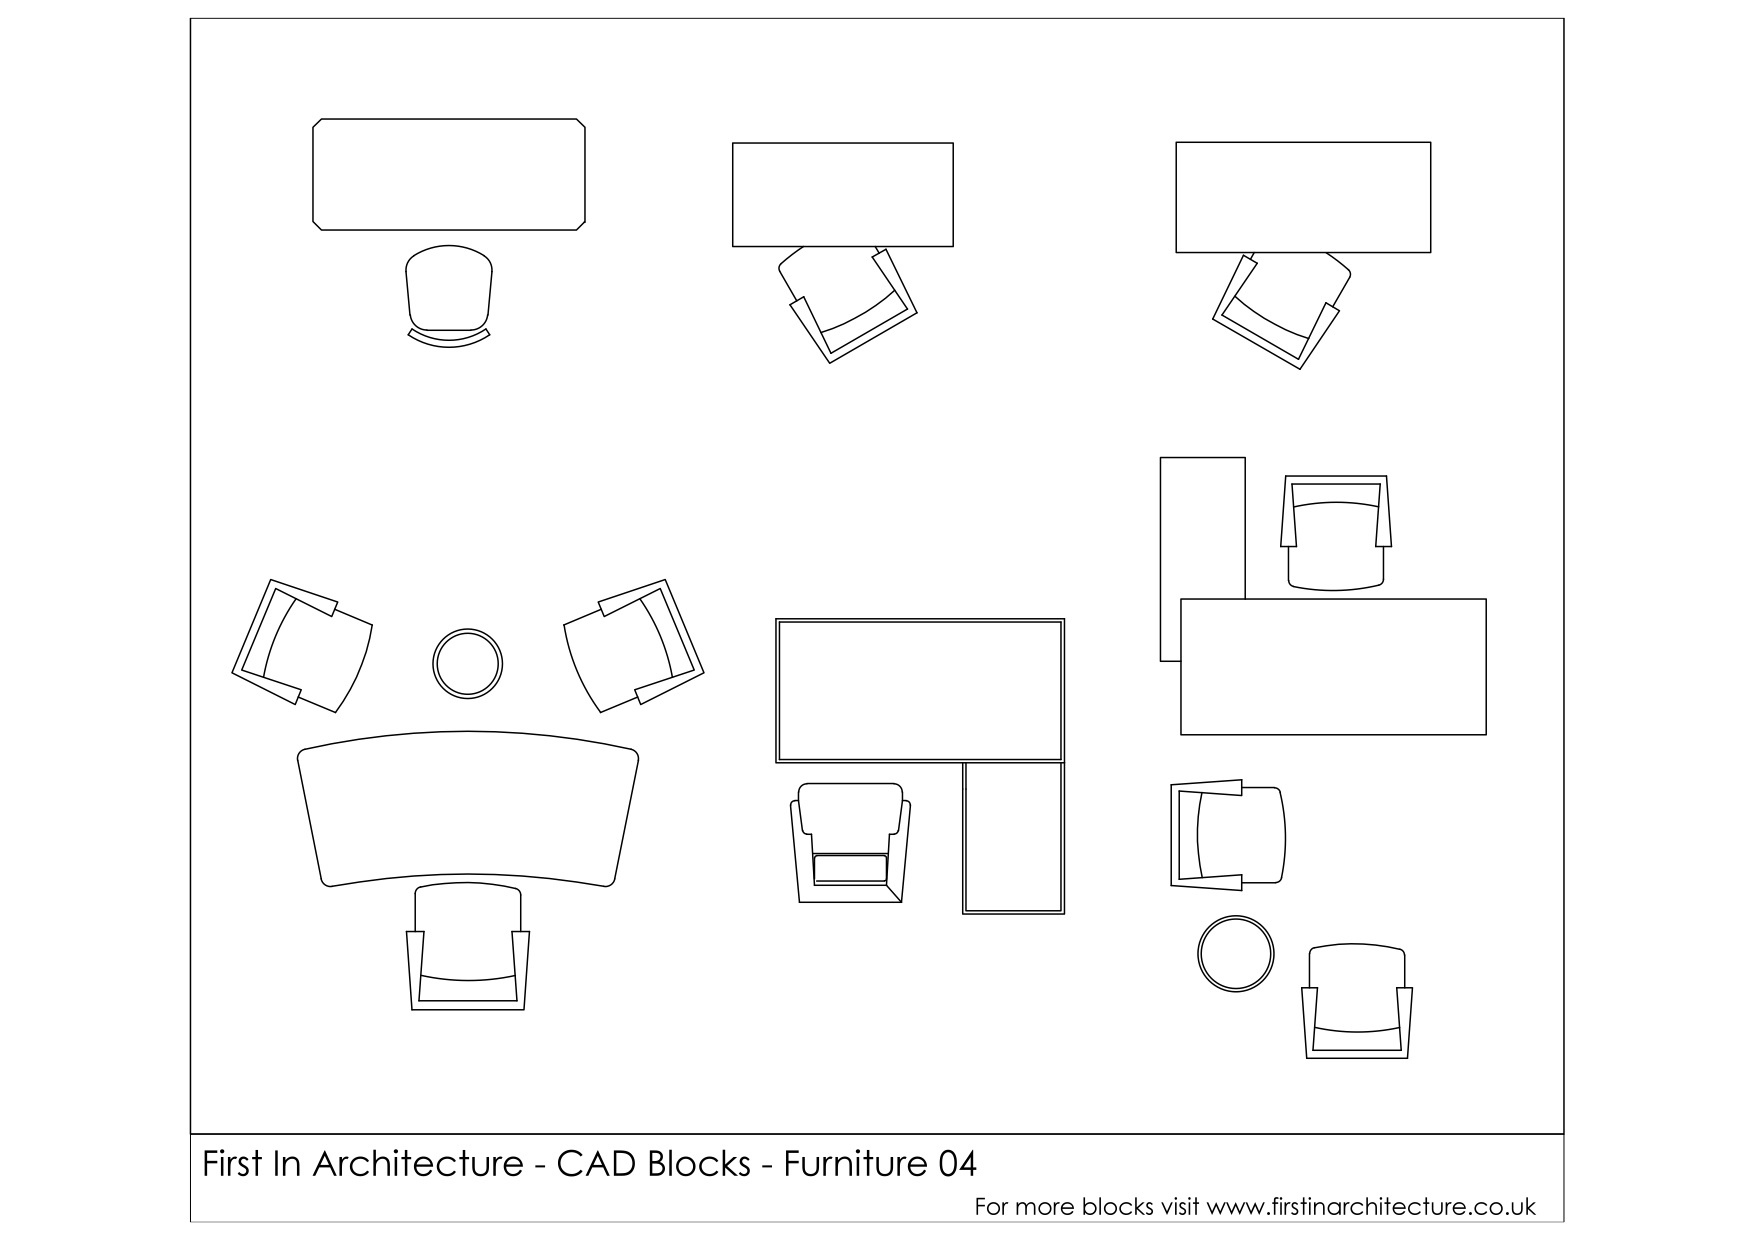 Restaurant Furniture Cad Blocks Joy Studio Design